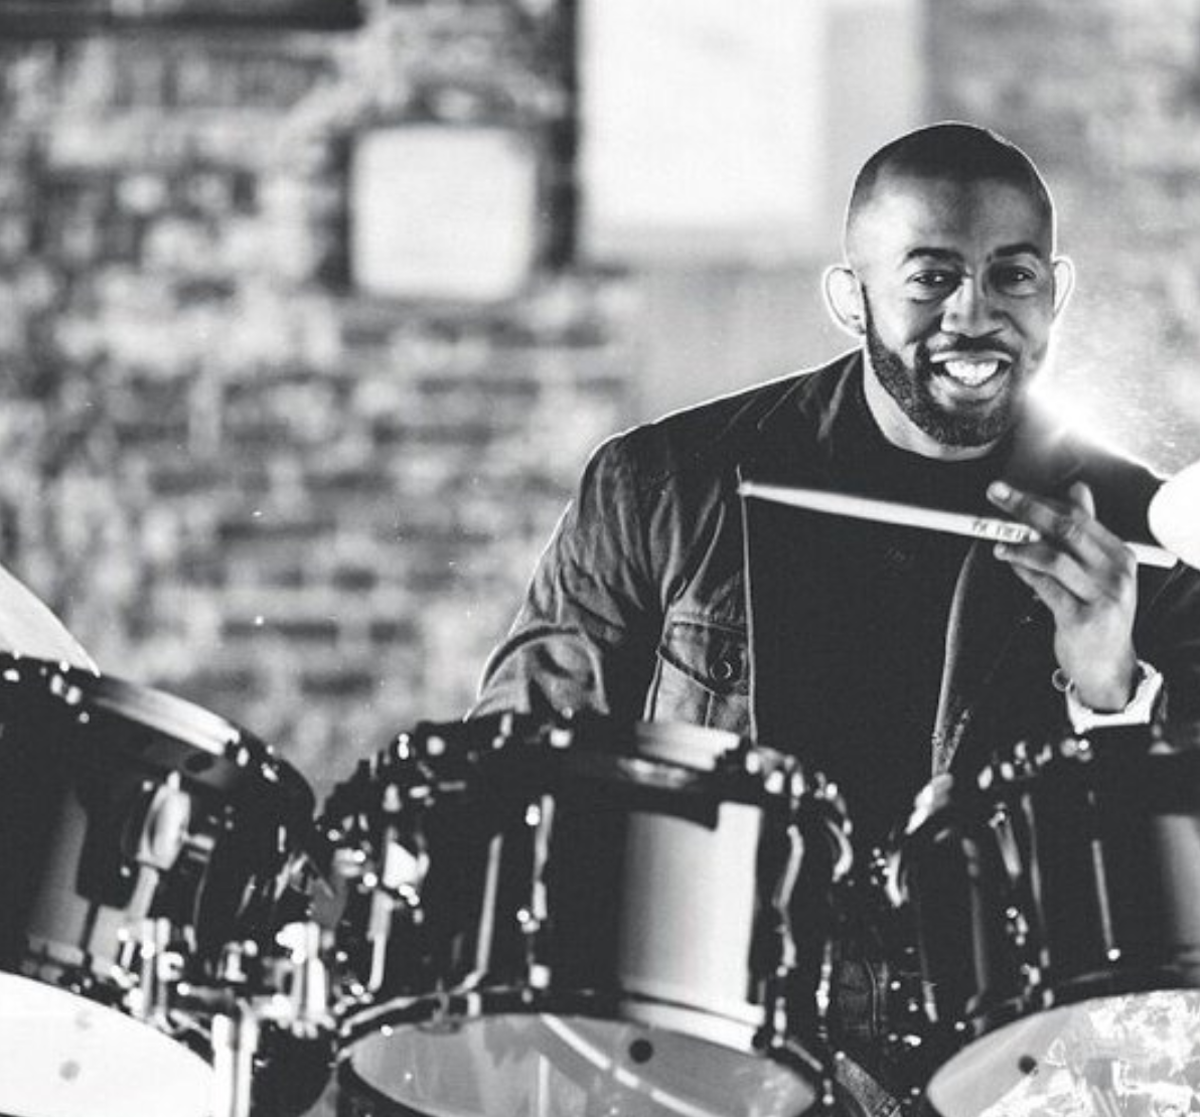 Jeremy Thomas - Drums - Jeremy Thomas is without doubt one of the top musicians in the region. Jeremy Thomas is a multi-instrumentalist. For March 15th, we'll have him swingin' on drums!